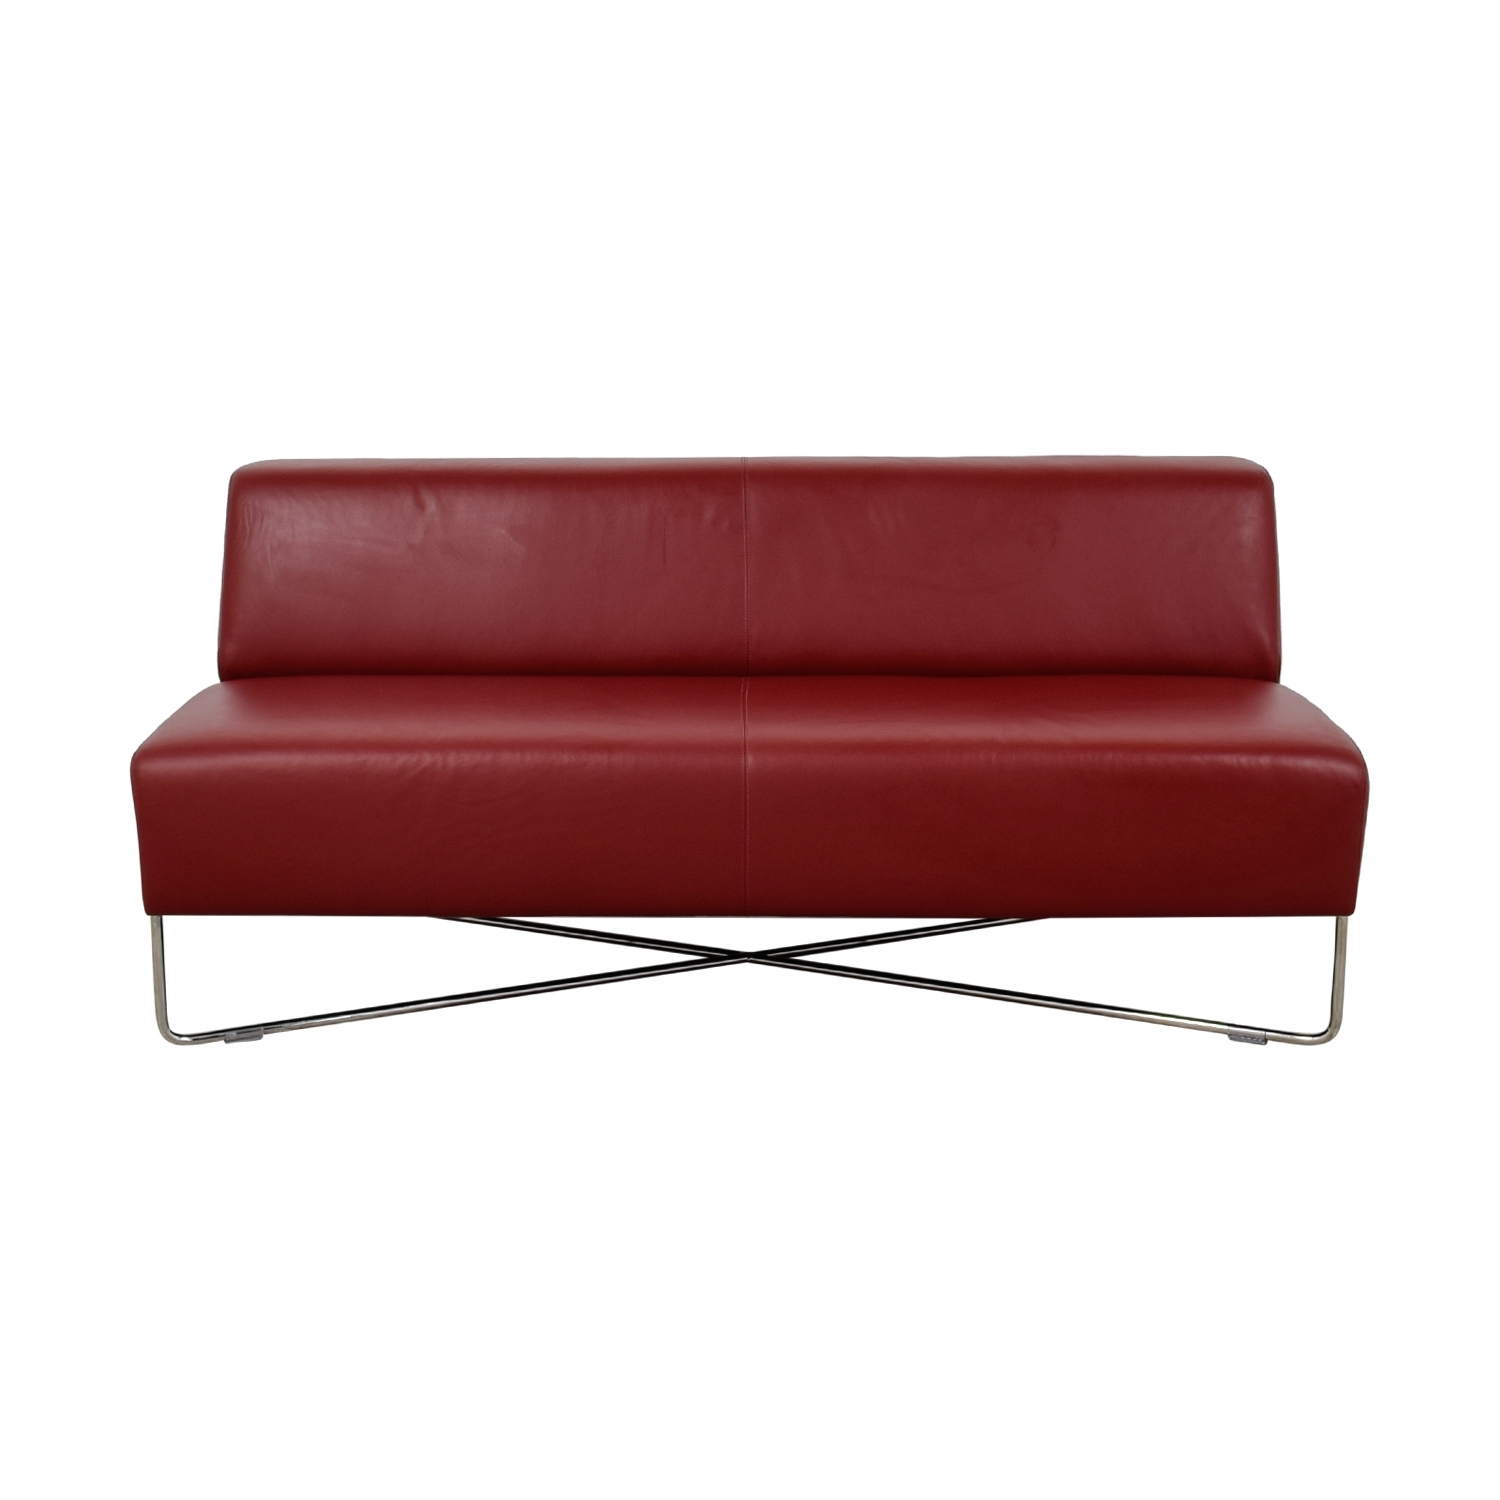 [%59% Off – Ikea Ikea Kivik Grey Chaise / Sofas Pertaining To Most Popular Red Chaises|Red Chaises Within Fashionable 59% Off – Ikea Ikea Kivik Grey Chaise / Sofas|Fashionable Red Chaises Intended For 59% Off – Ikea Ikea Kivik Grey Chaise / Sofas|Latest 59% Off – Ikea Ikea Kivik Grey Chaise / Sofas With Red Chaises%] (View 1 of 15)